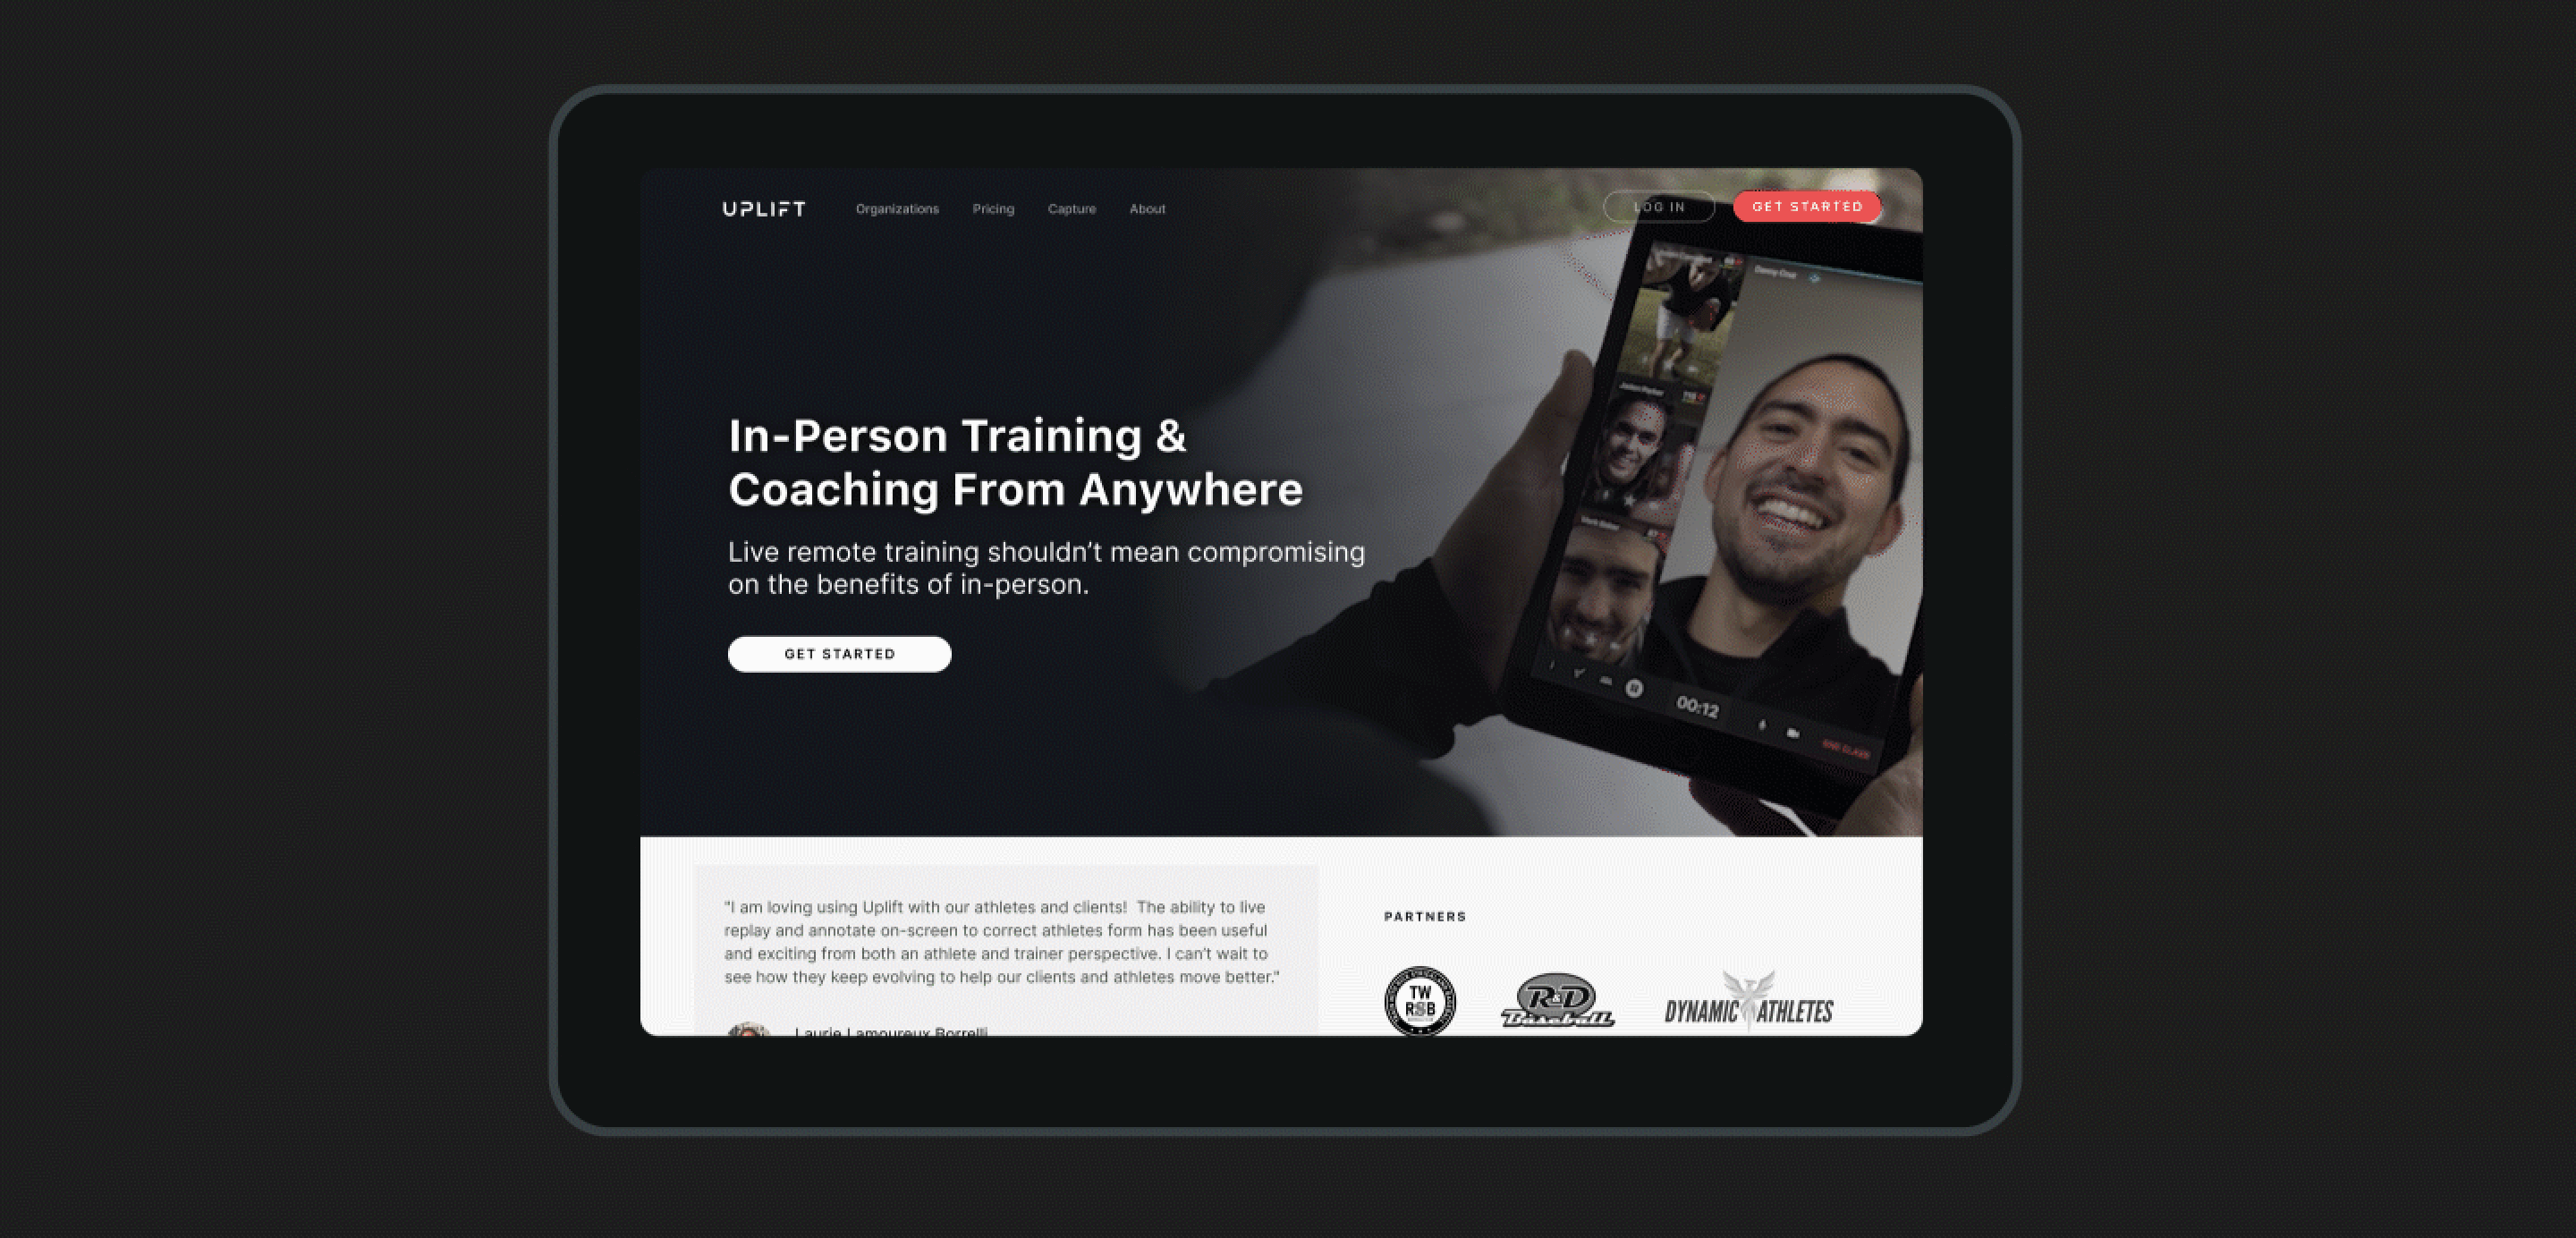 Shaping the future of live remote training